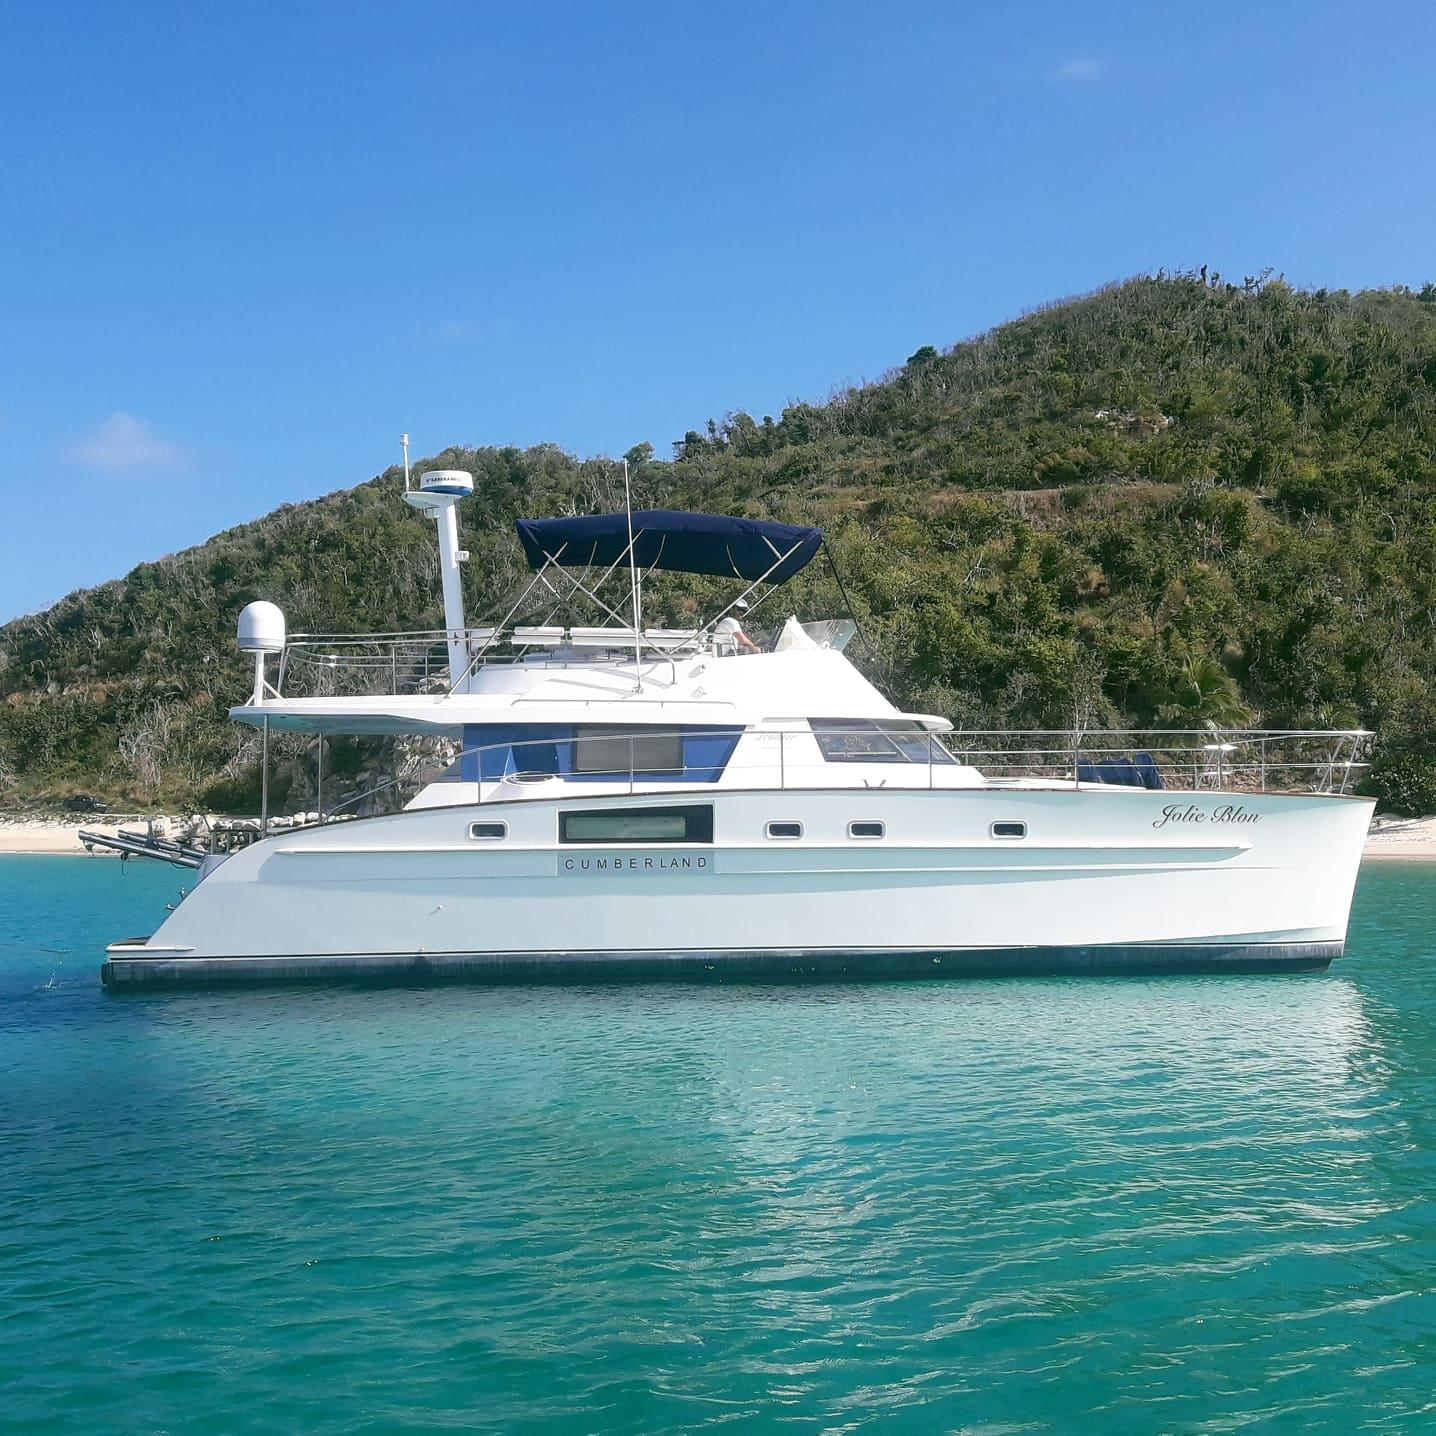 Fountaine Pajot cumberland 44 maestro Profile Shot